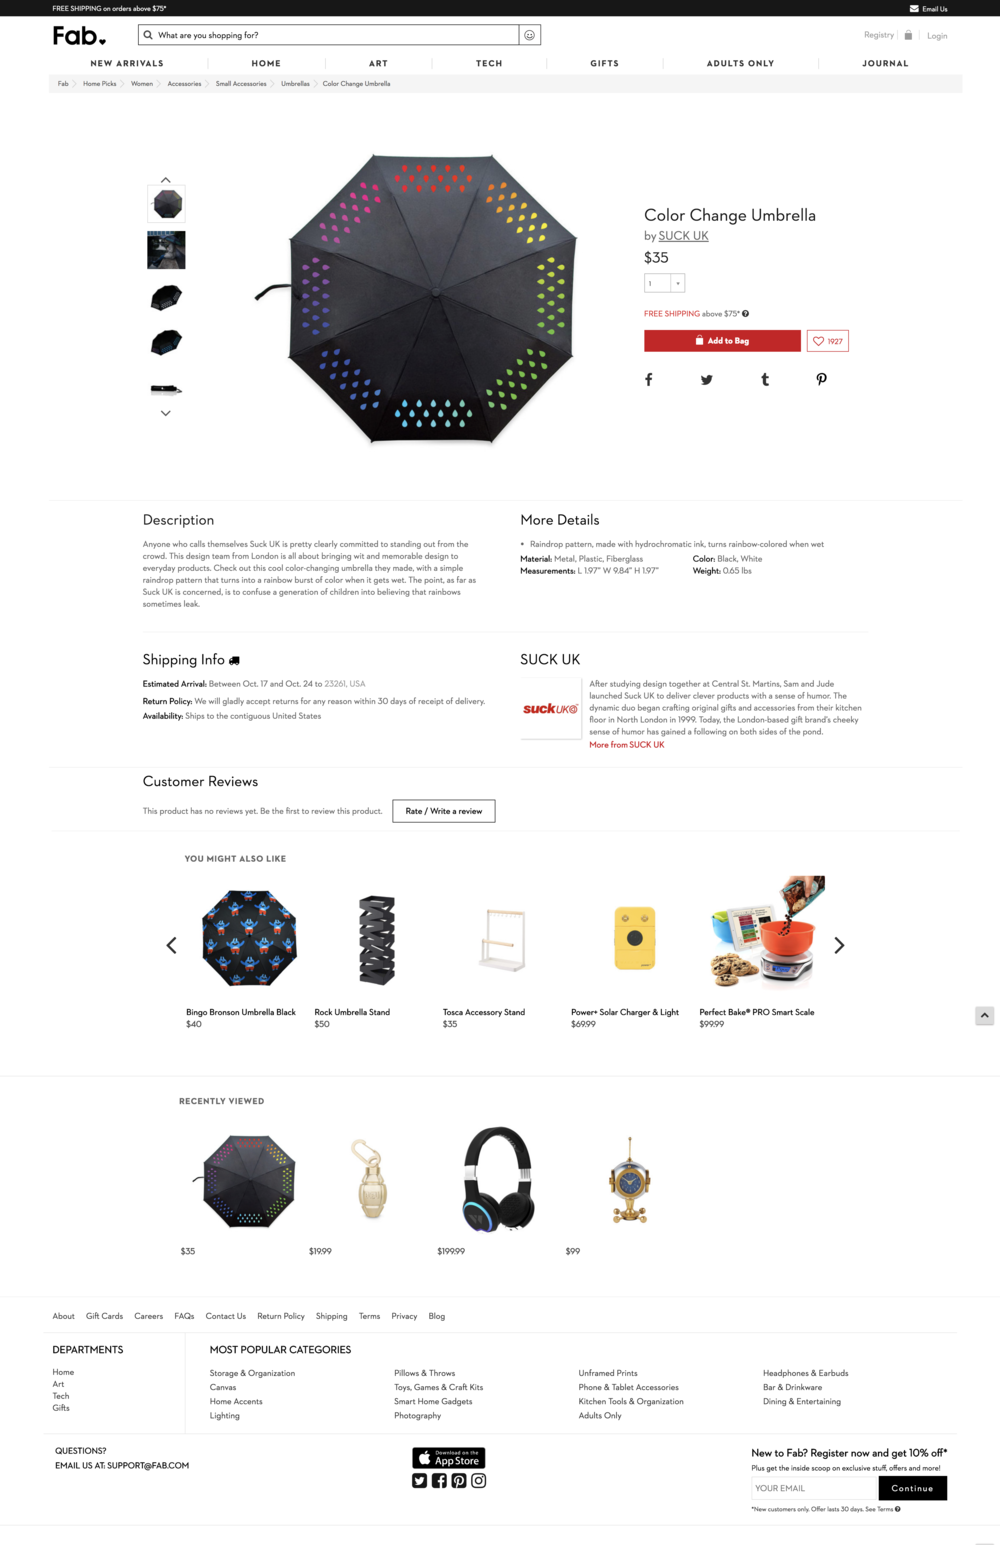 Fab.com Product Page Redesign